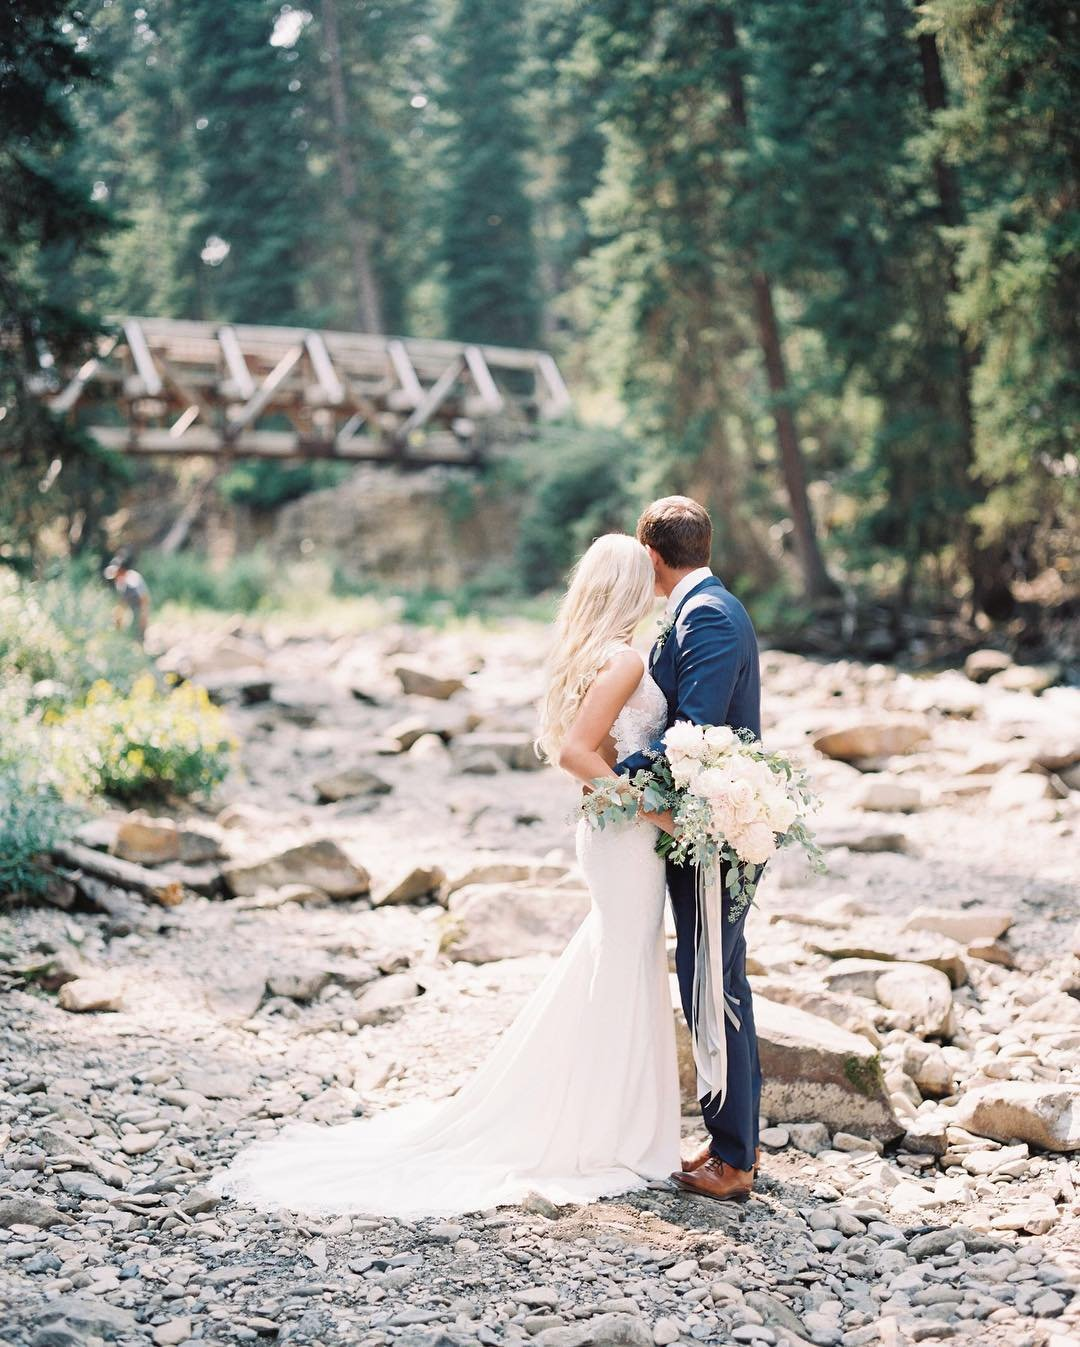 Photo by user jeremiahandrachel, caption reads Oh Kaley and Ryan...your day was so magical!! Let's do it all over again!!